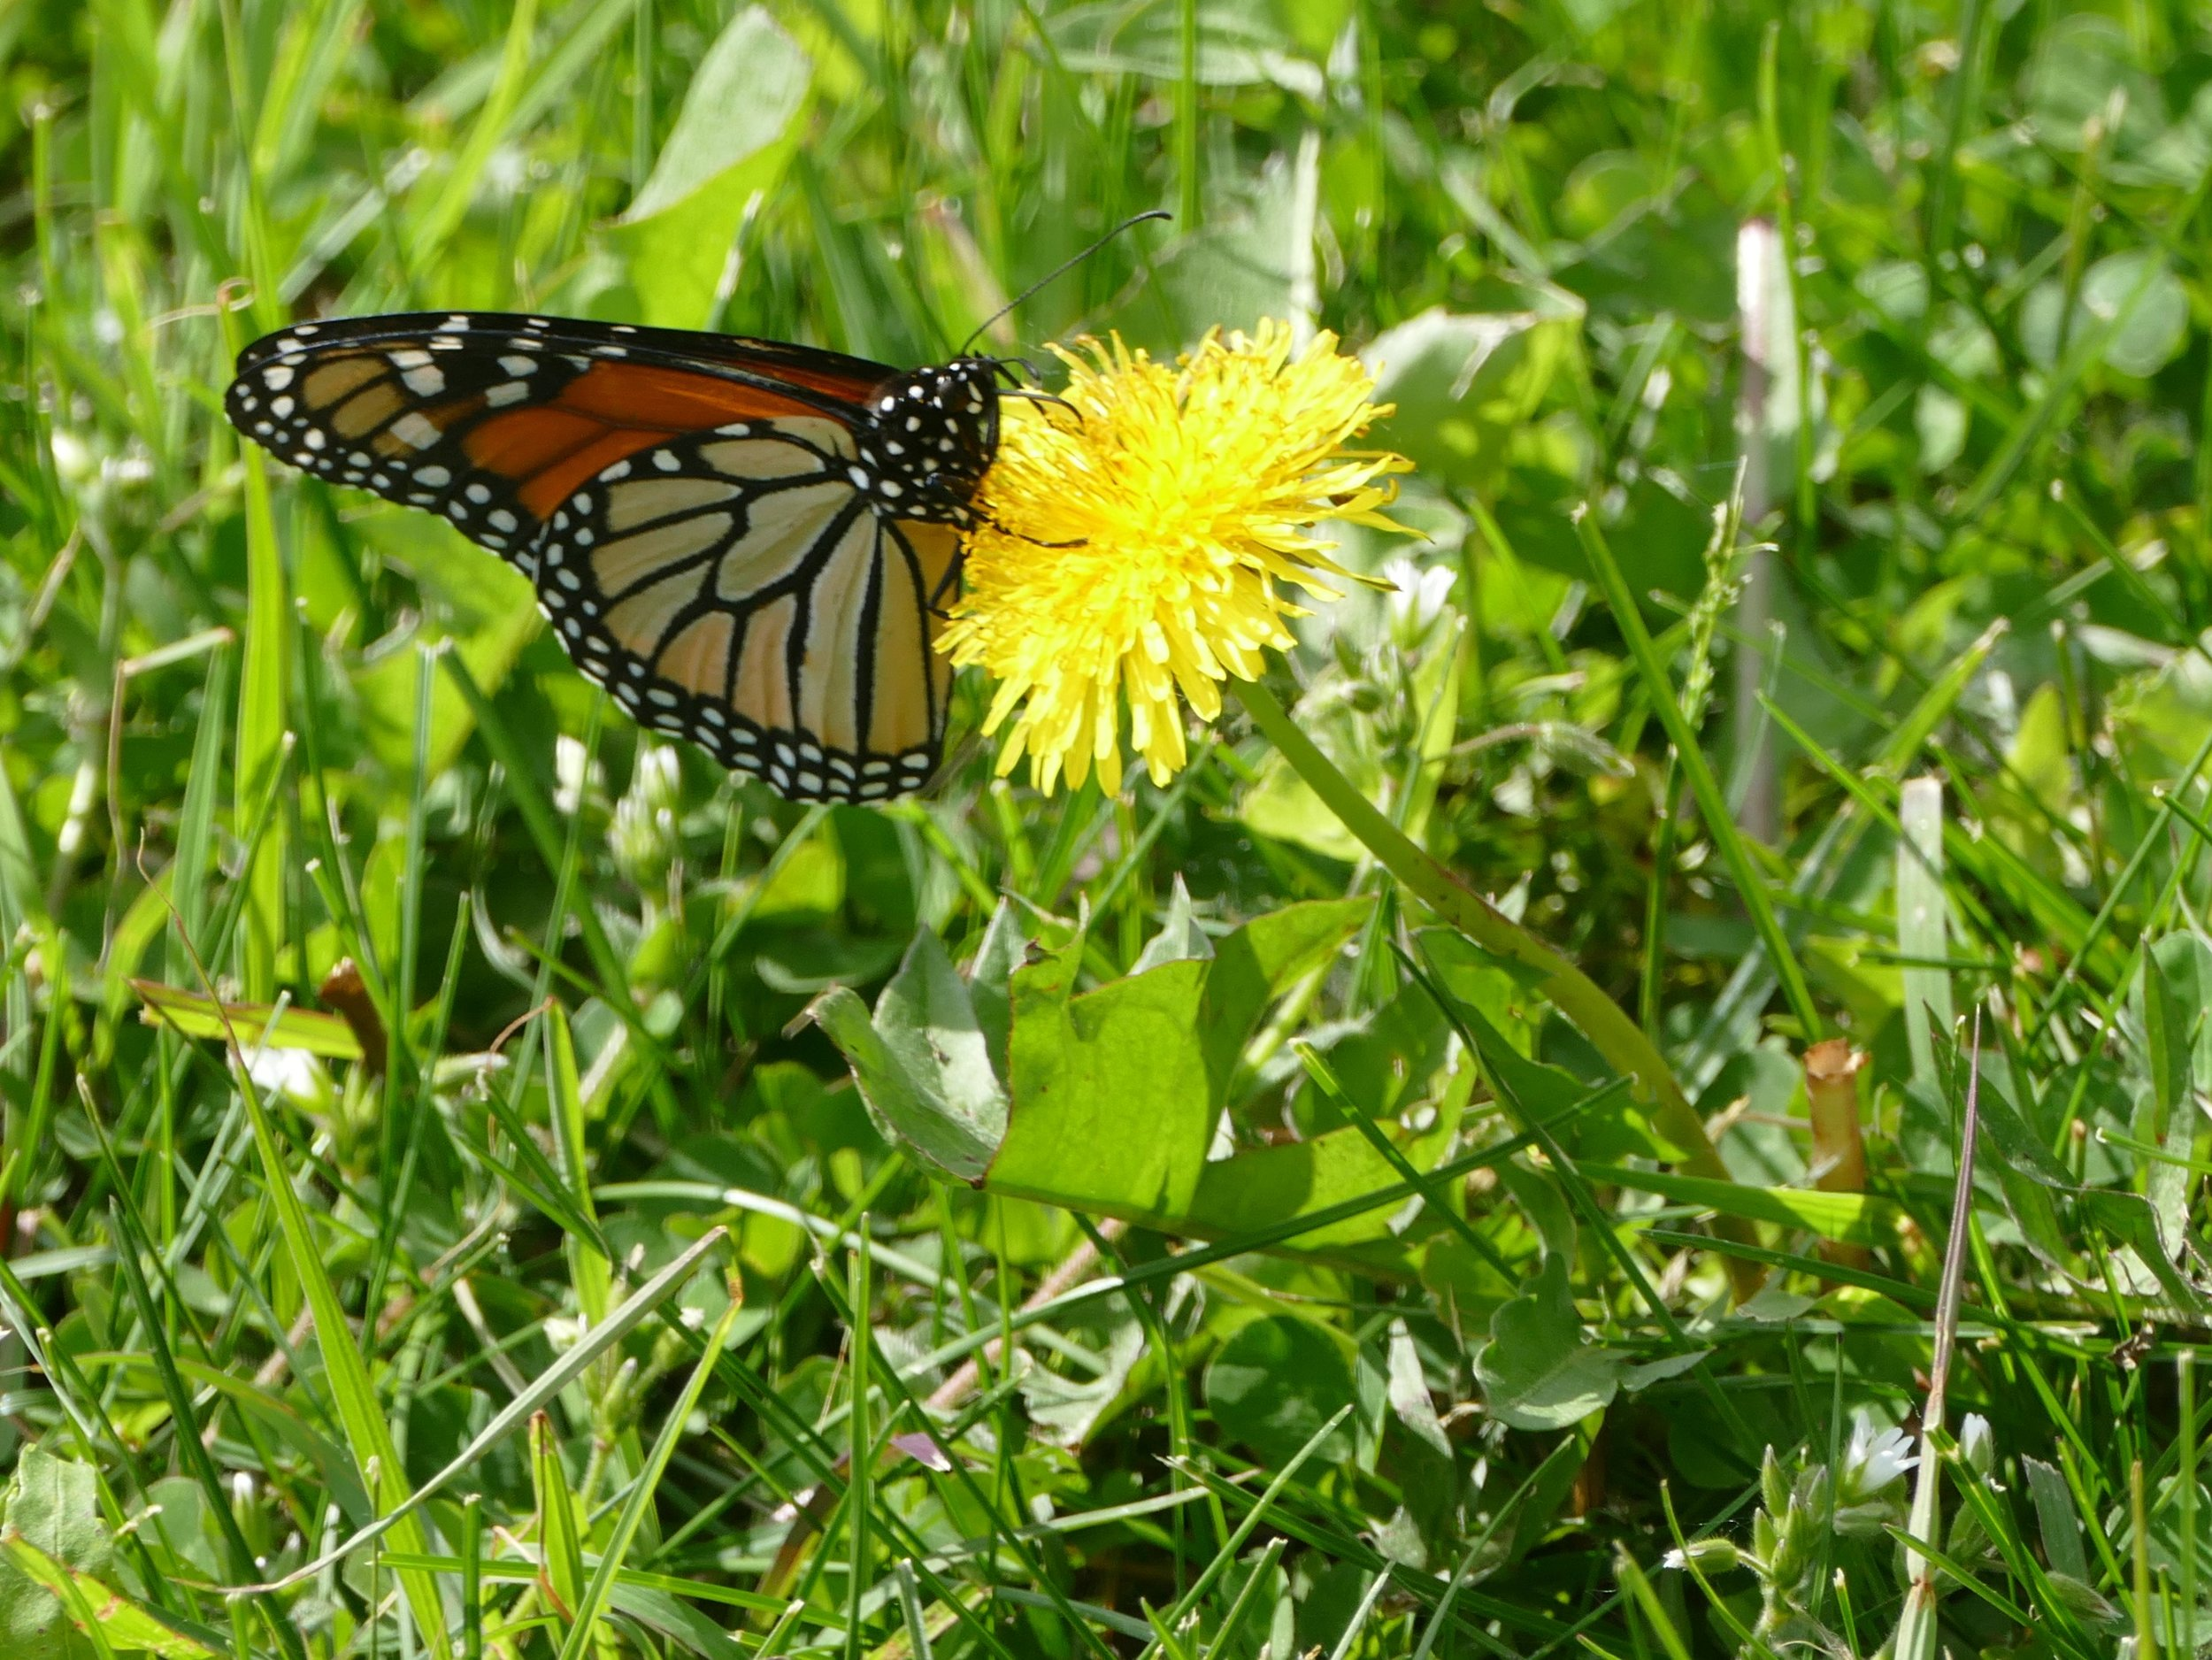 This monarch greeted me to Minnesota and was a welcomed relief.